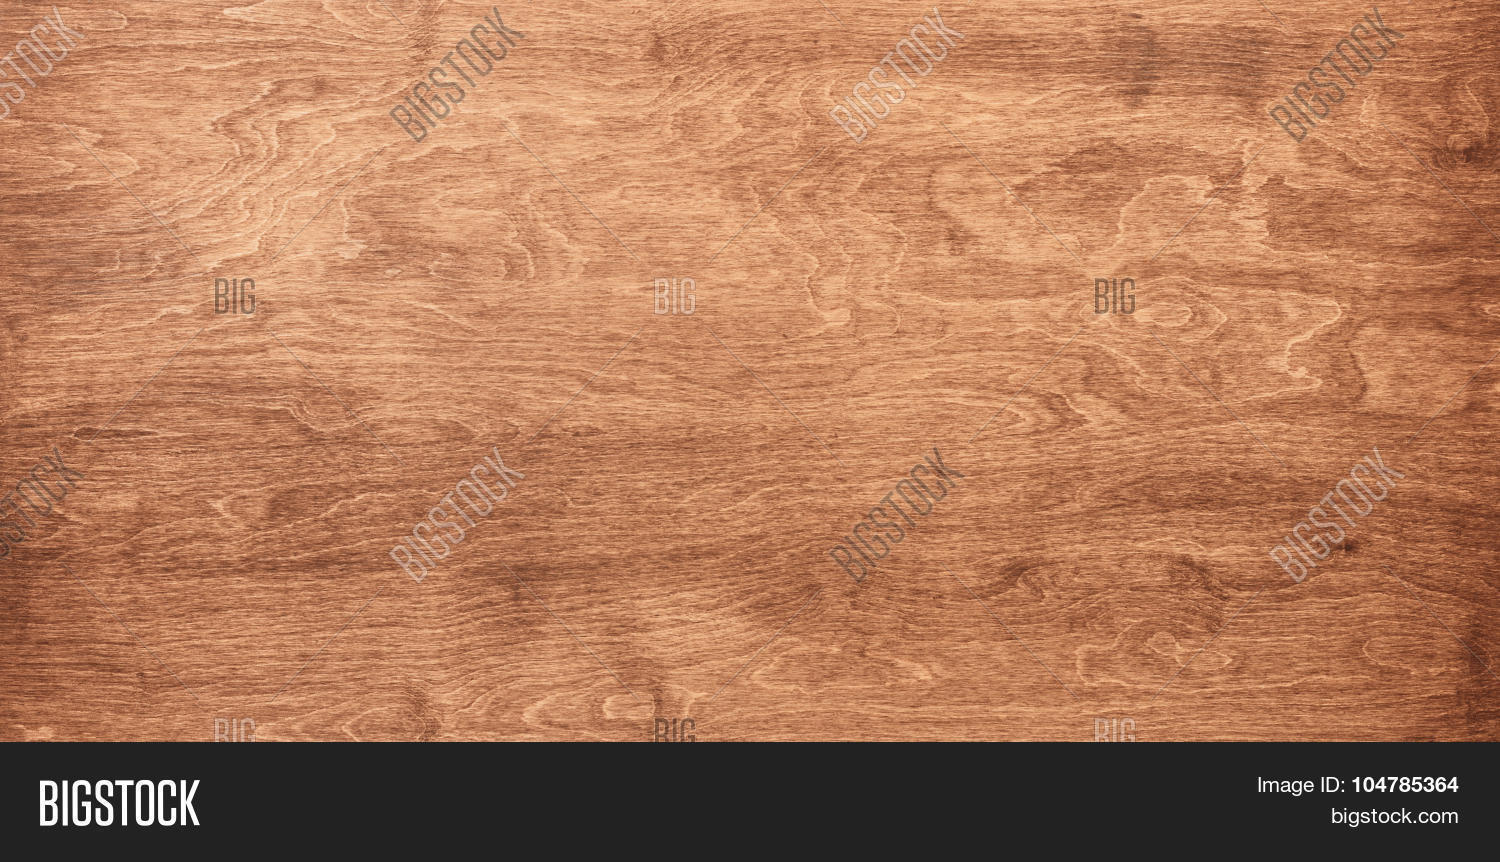 Wooden table background pattern - Wood Texture Top View Timber Texture Hardwood Wood Grain